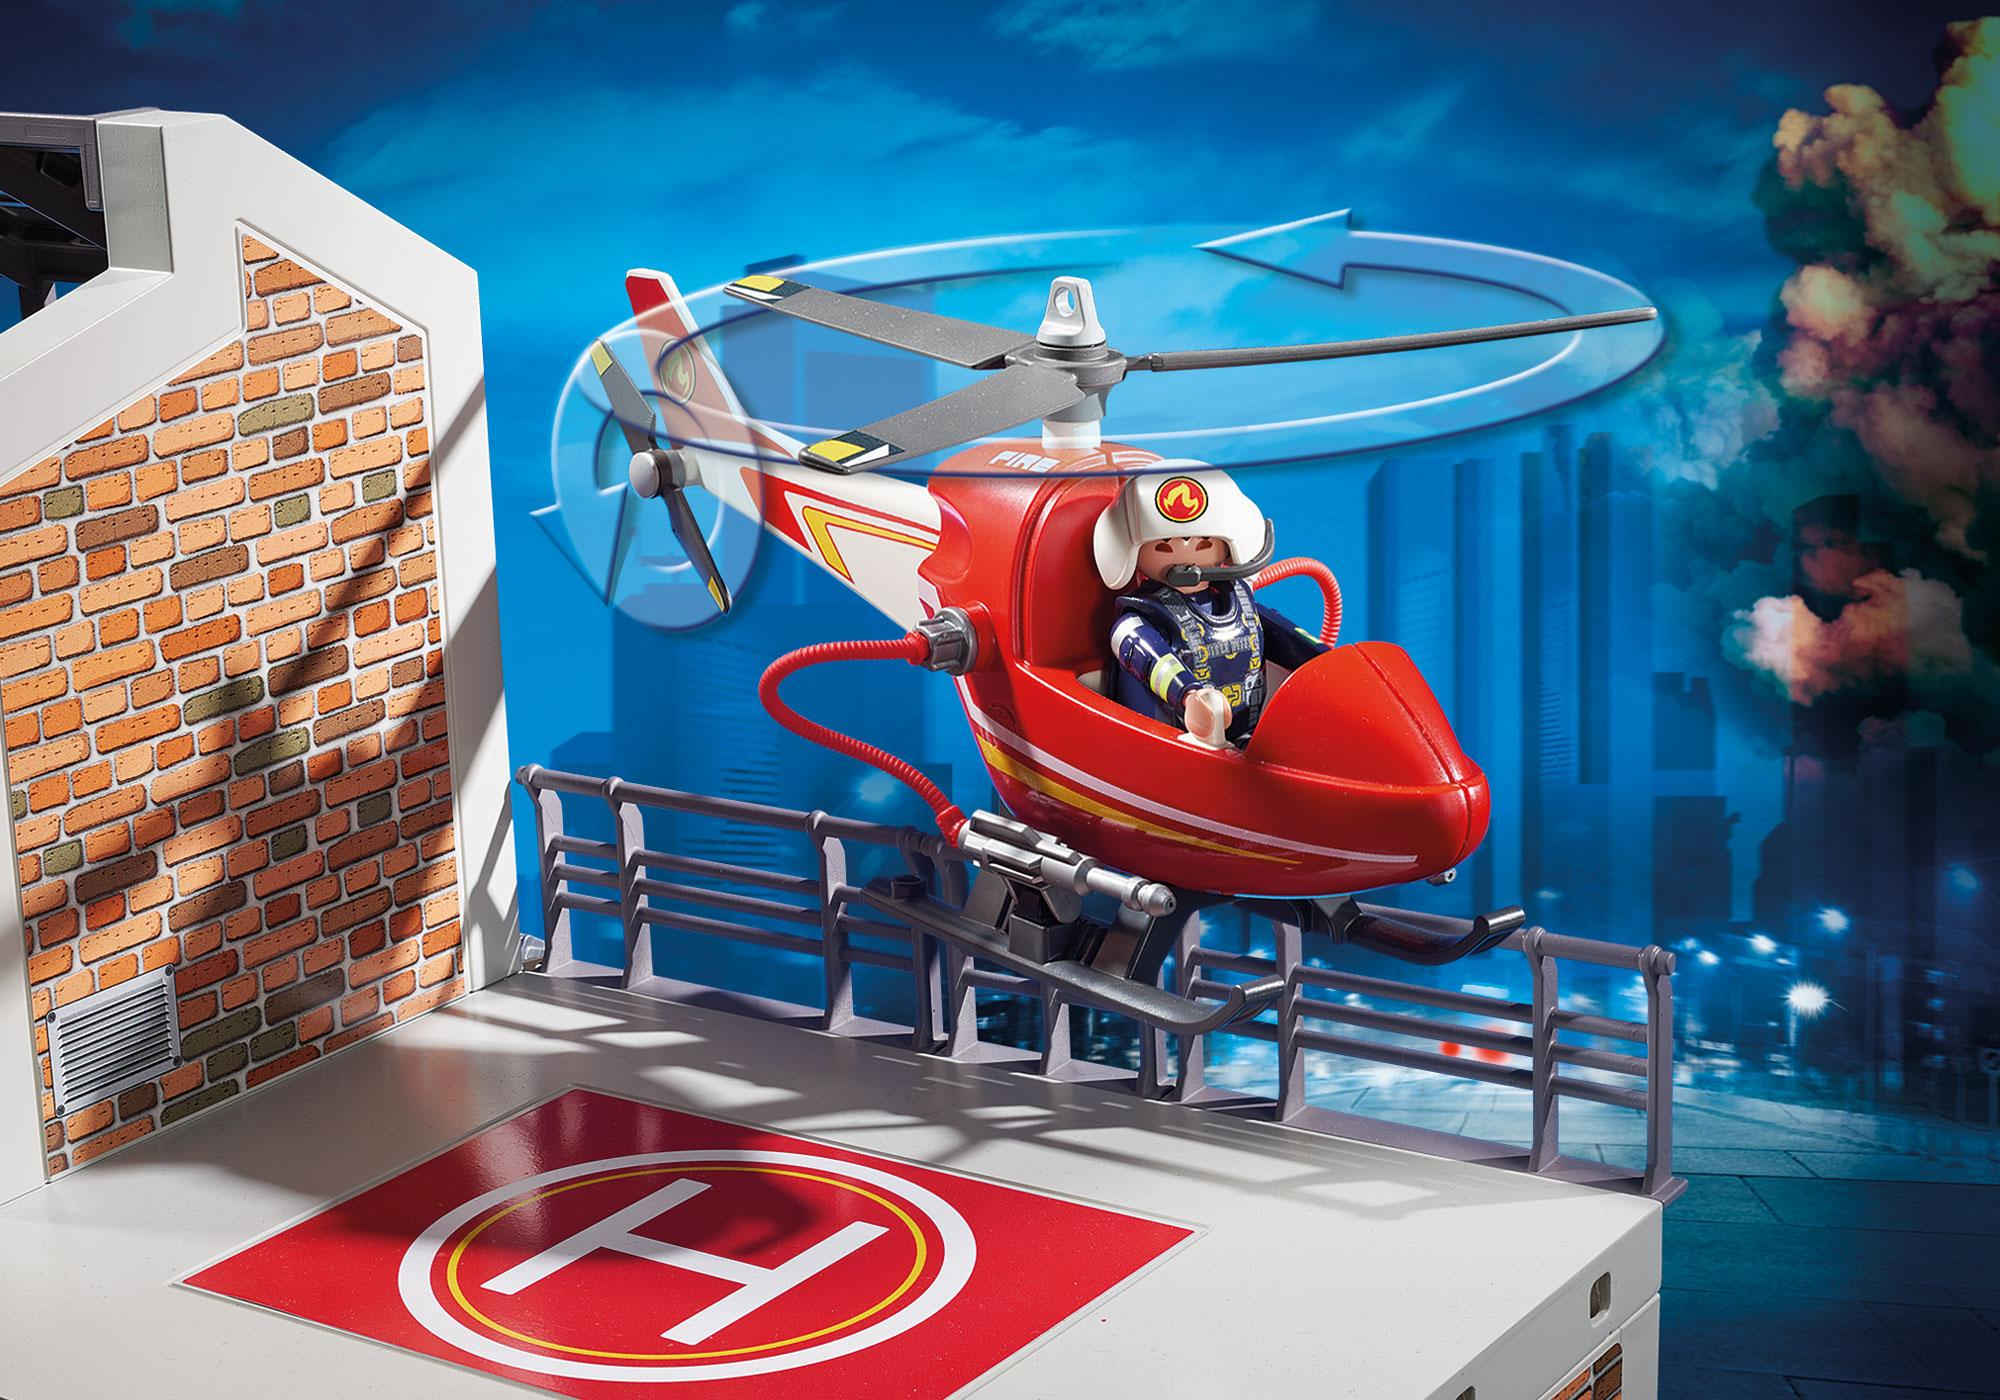 http://media.playmobil.com/i/playmobil/9462_product_extra1/Grote brandweerkazerne met helicopter